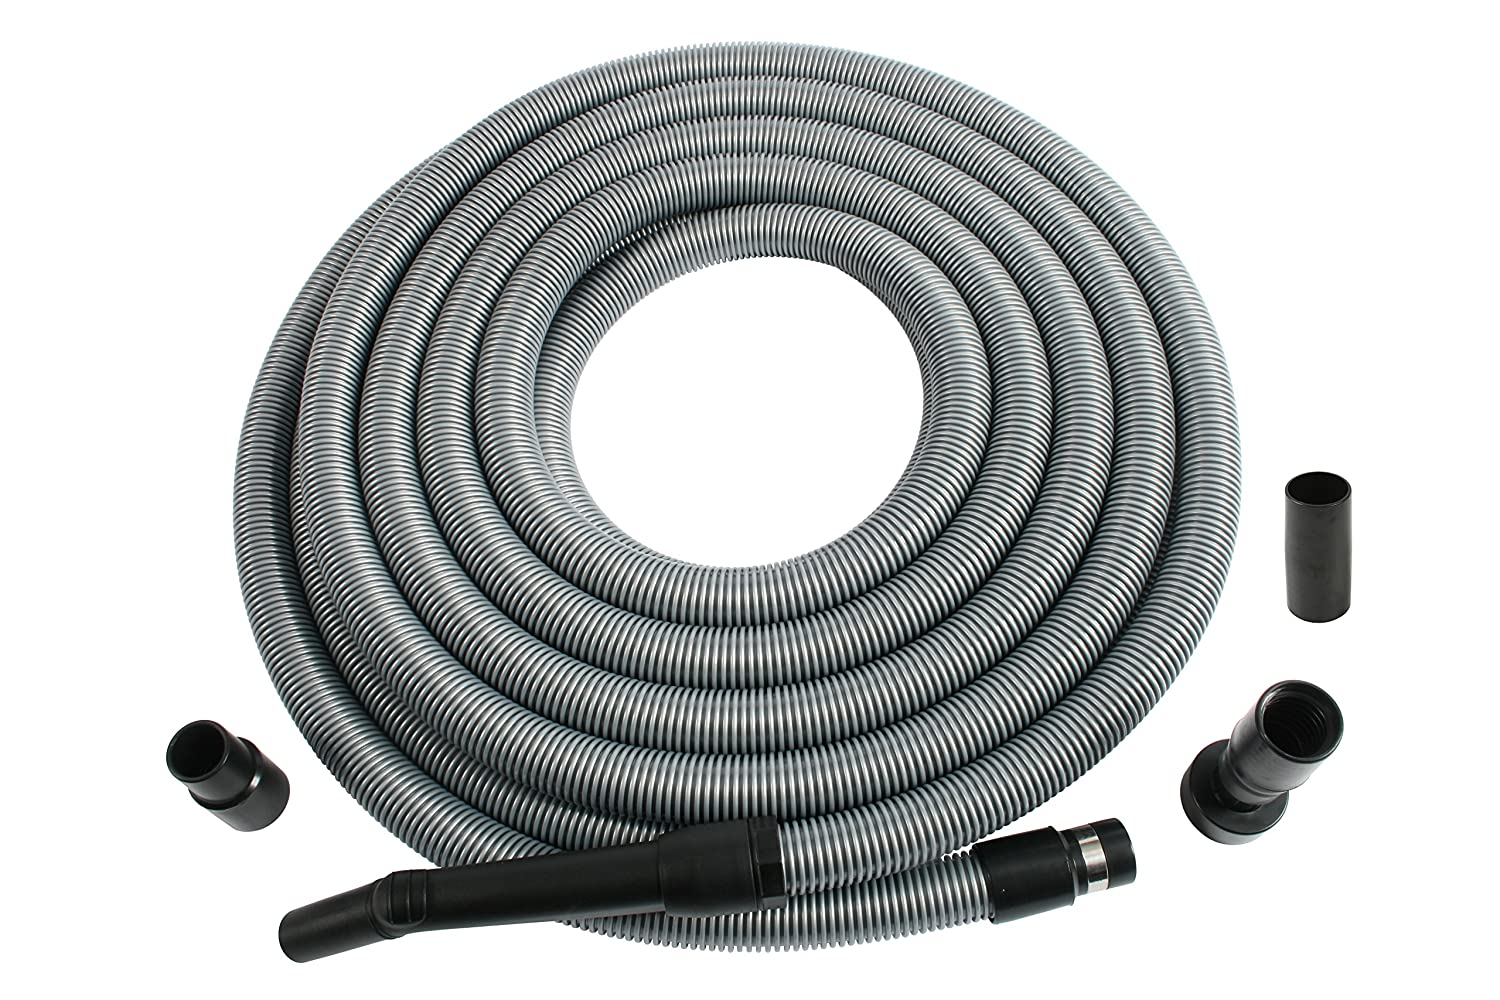 Cen-Tec Systems 50 Foot Extension Hose for Shop and Garage Vacuums 93180